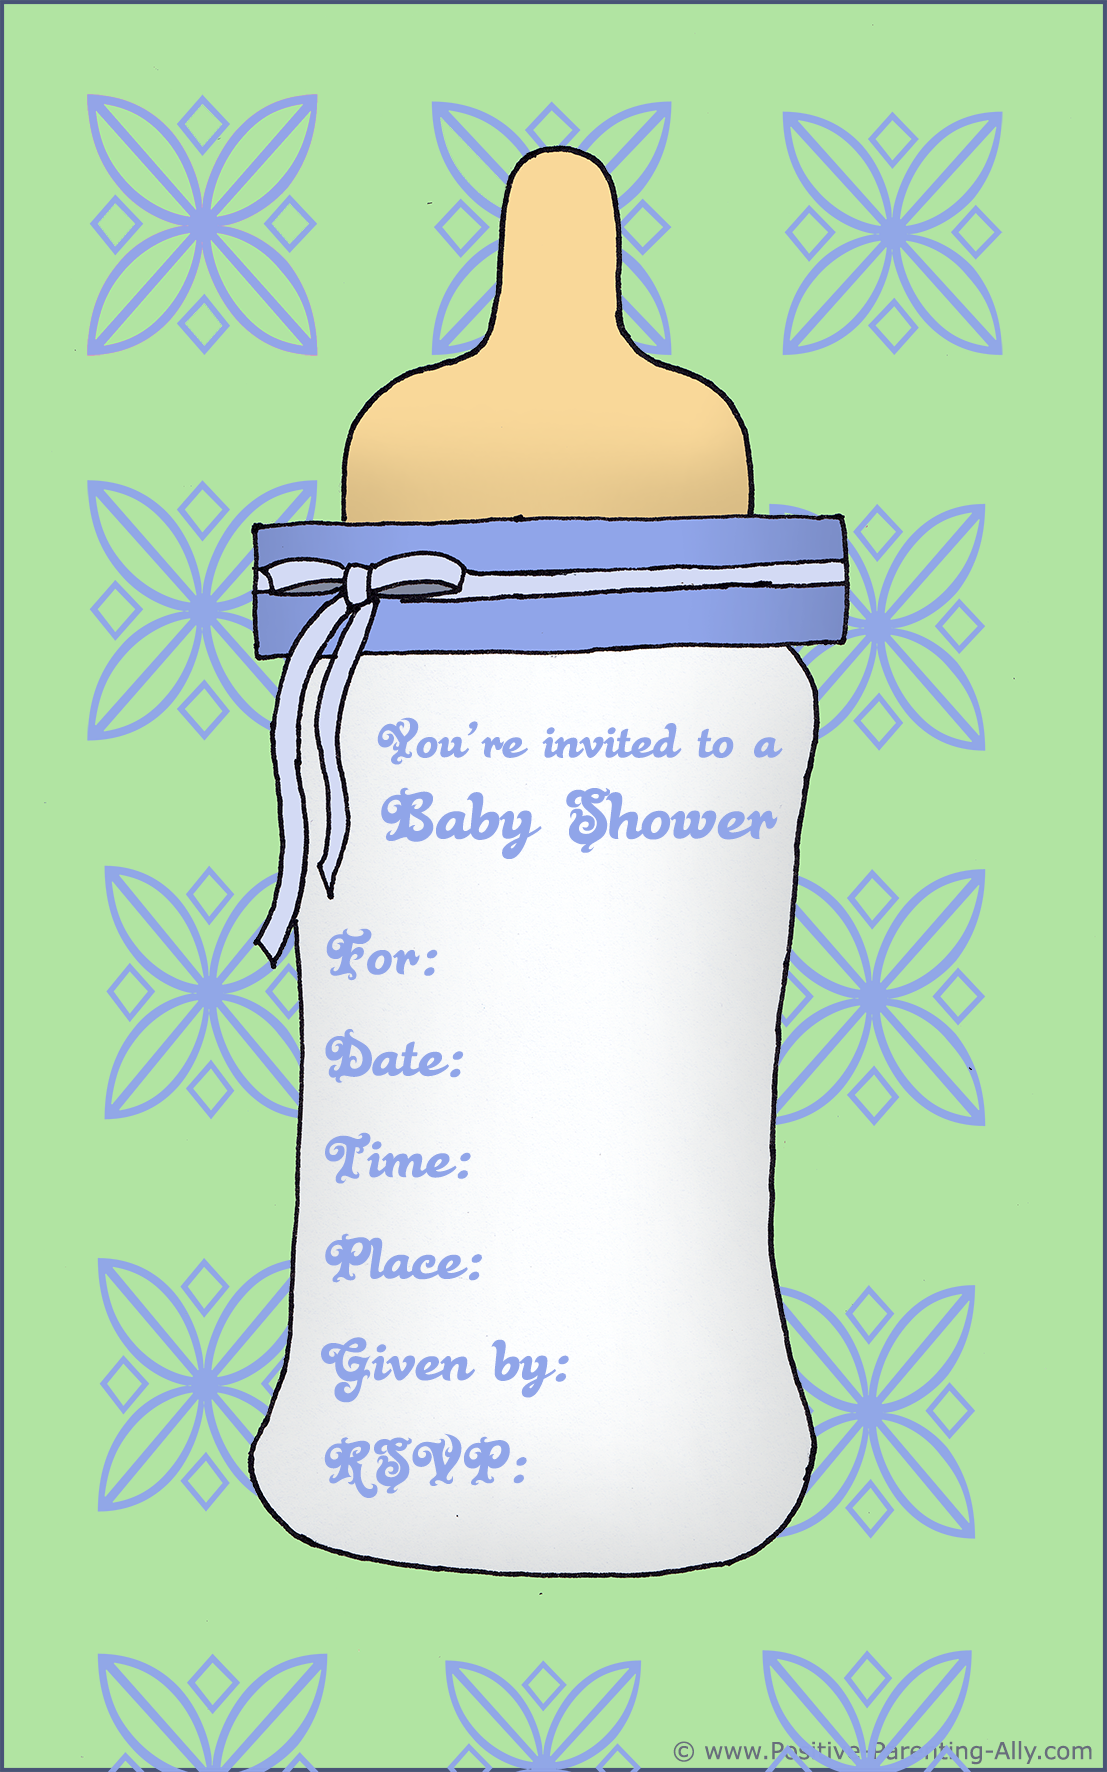 Unique baby shower templates featuring a baby bottle for boys.